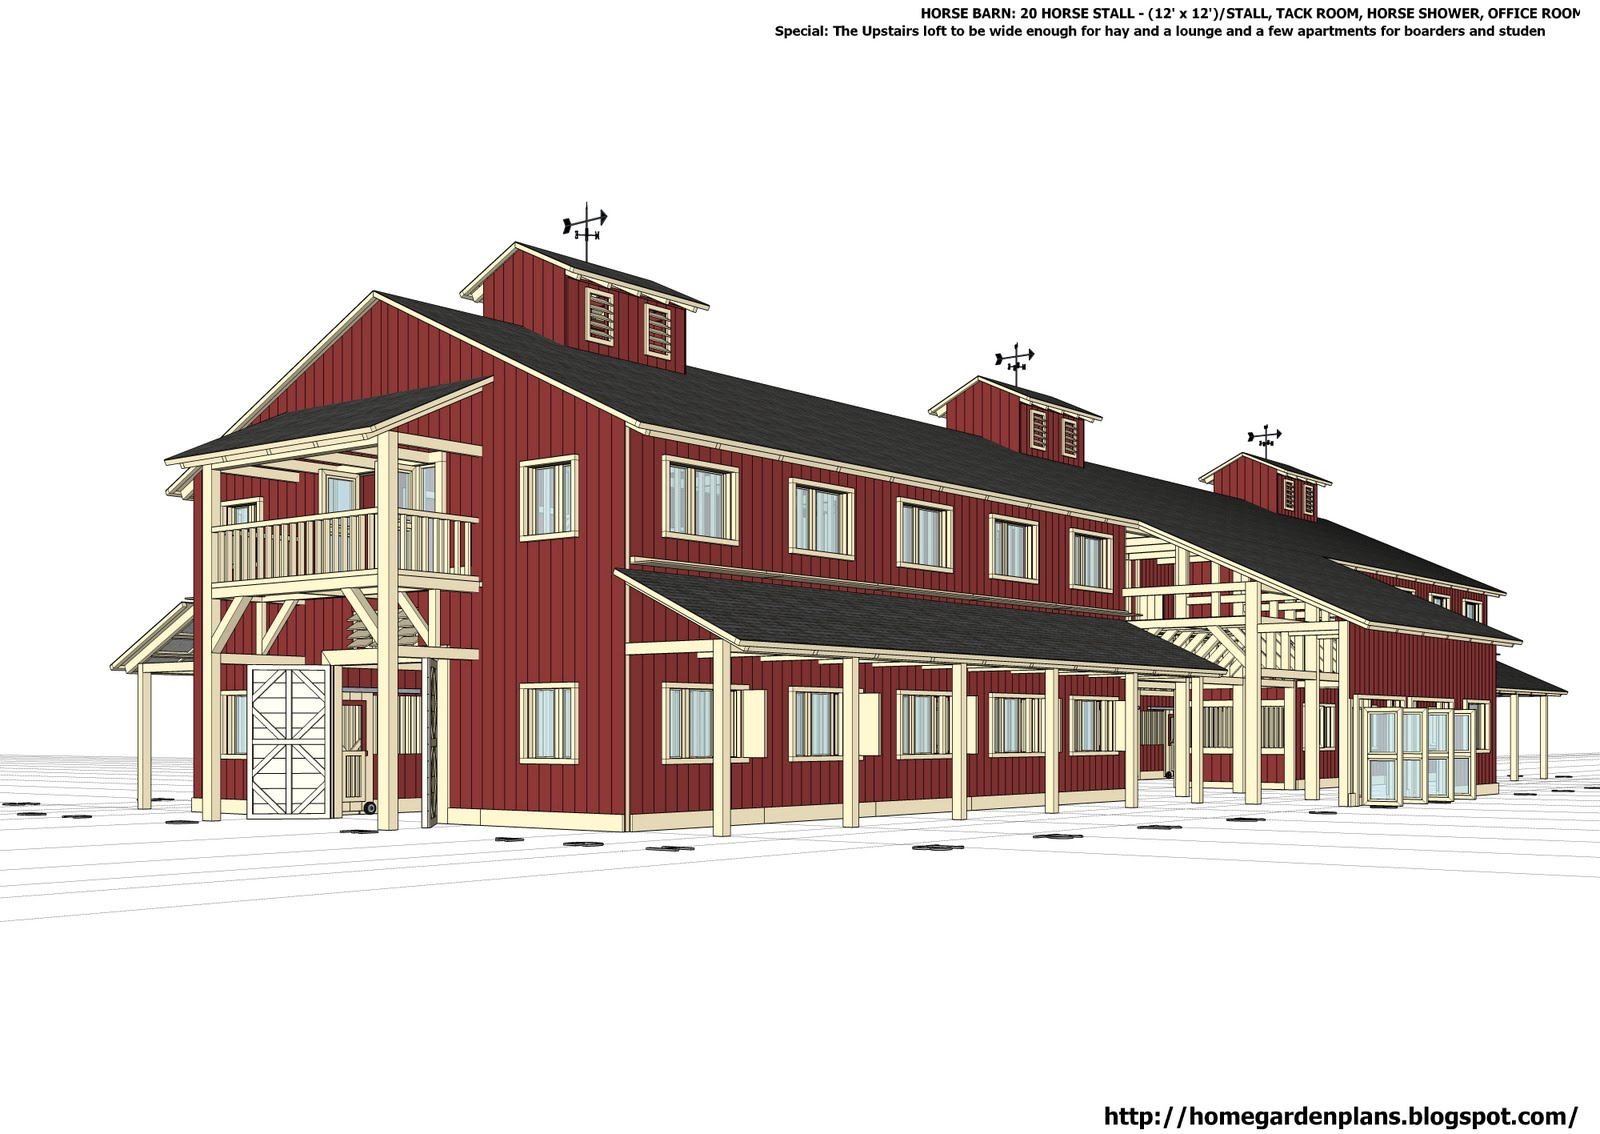 Horse barn designs pictures of free horse shed plans for Horse barn plans free